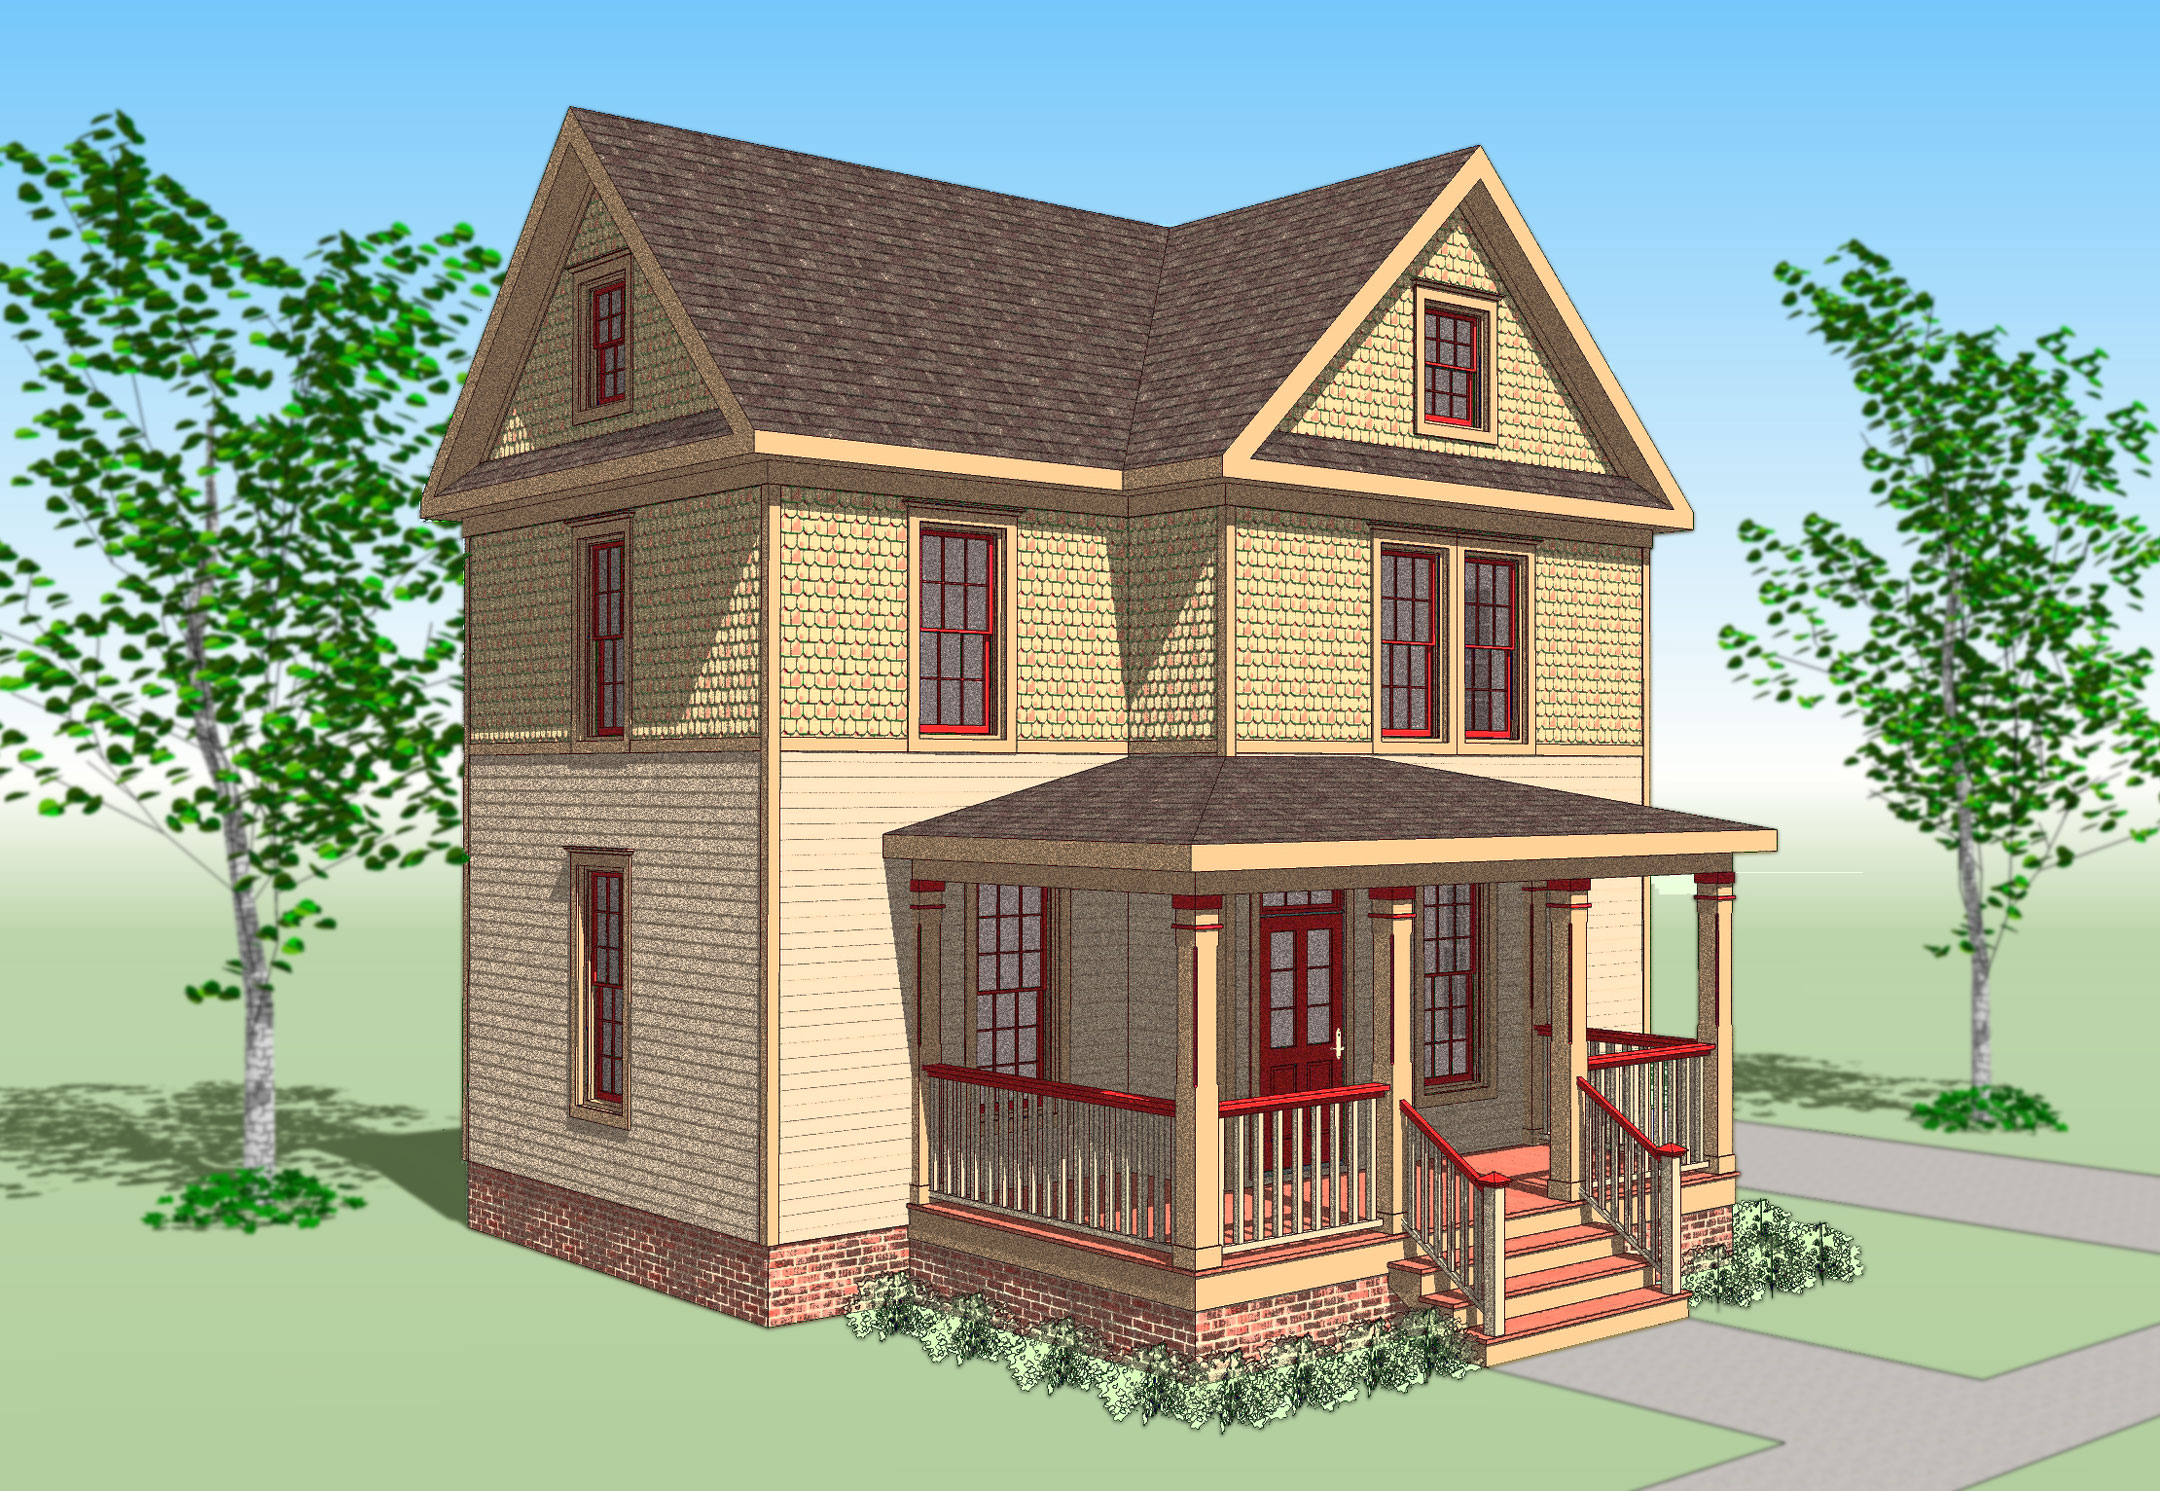 The sears victorian gmf architects house plans gmf for Victorian home plans